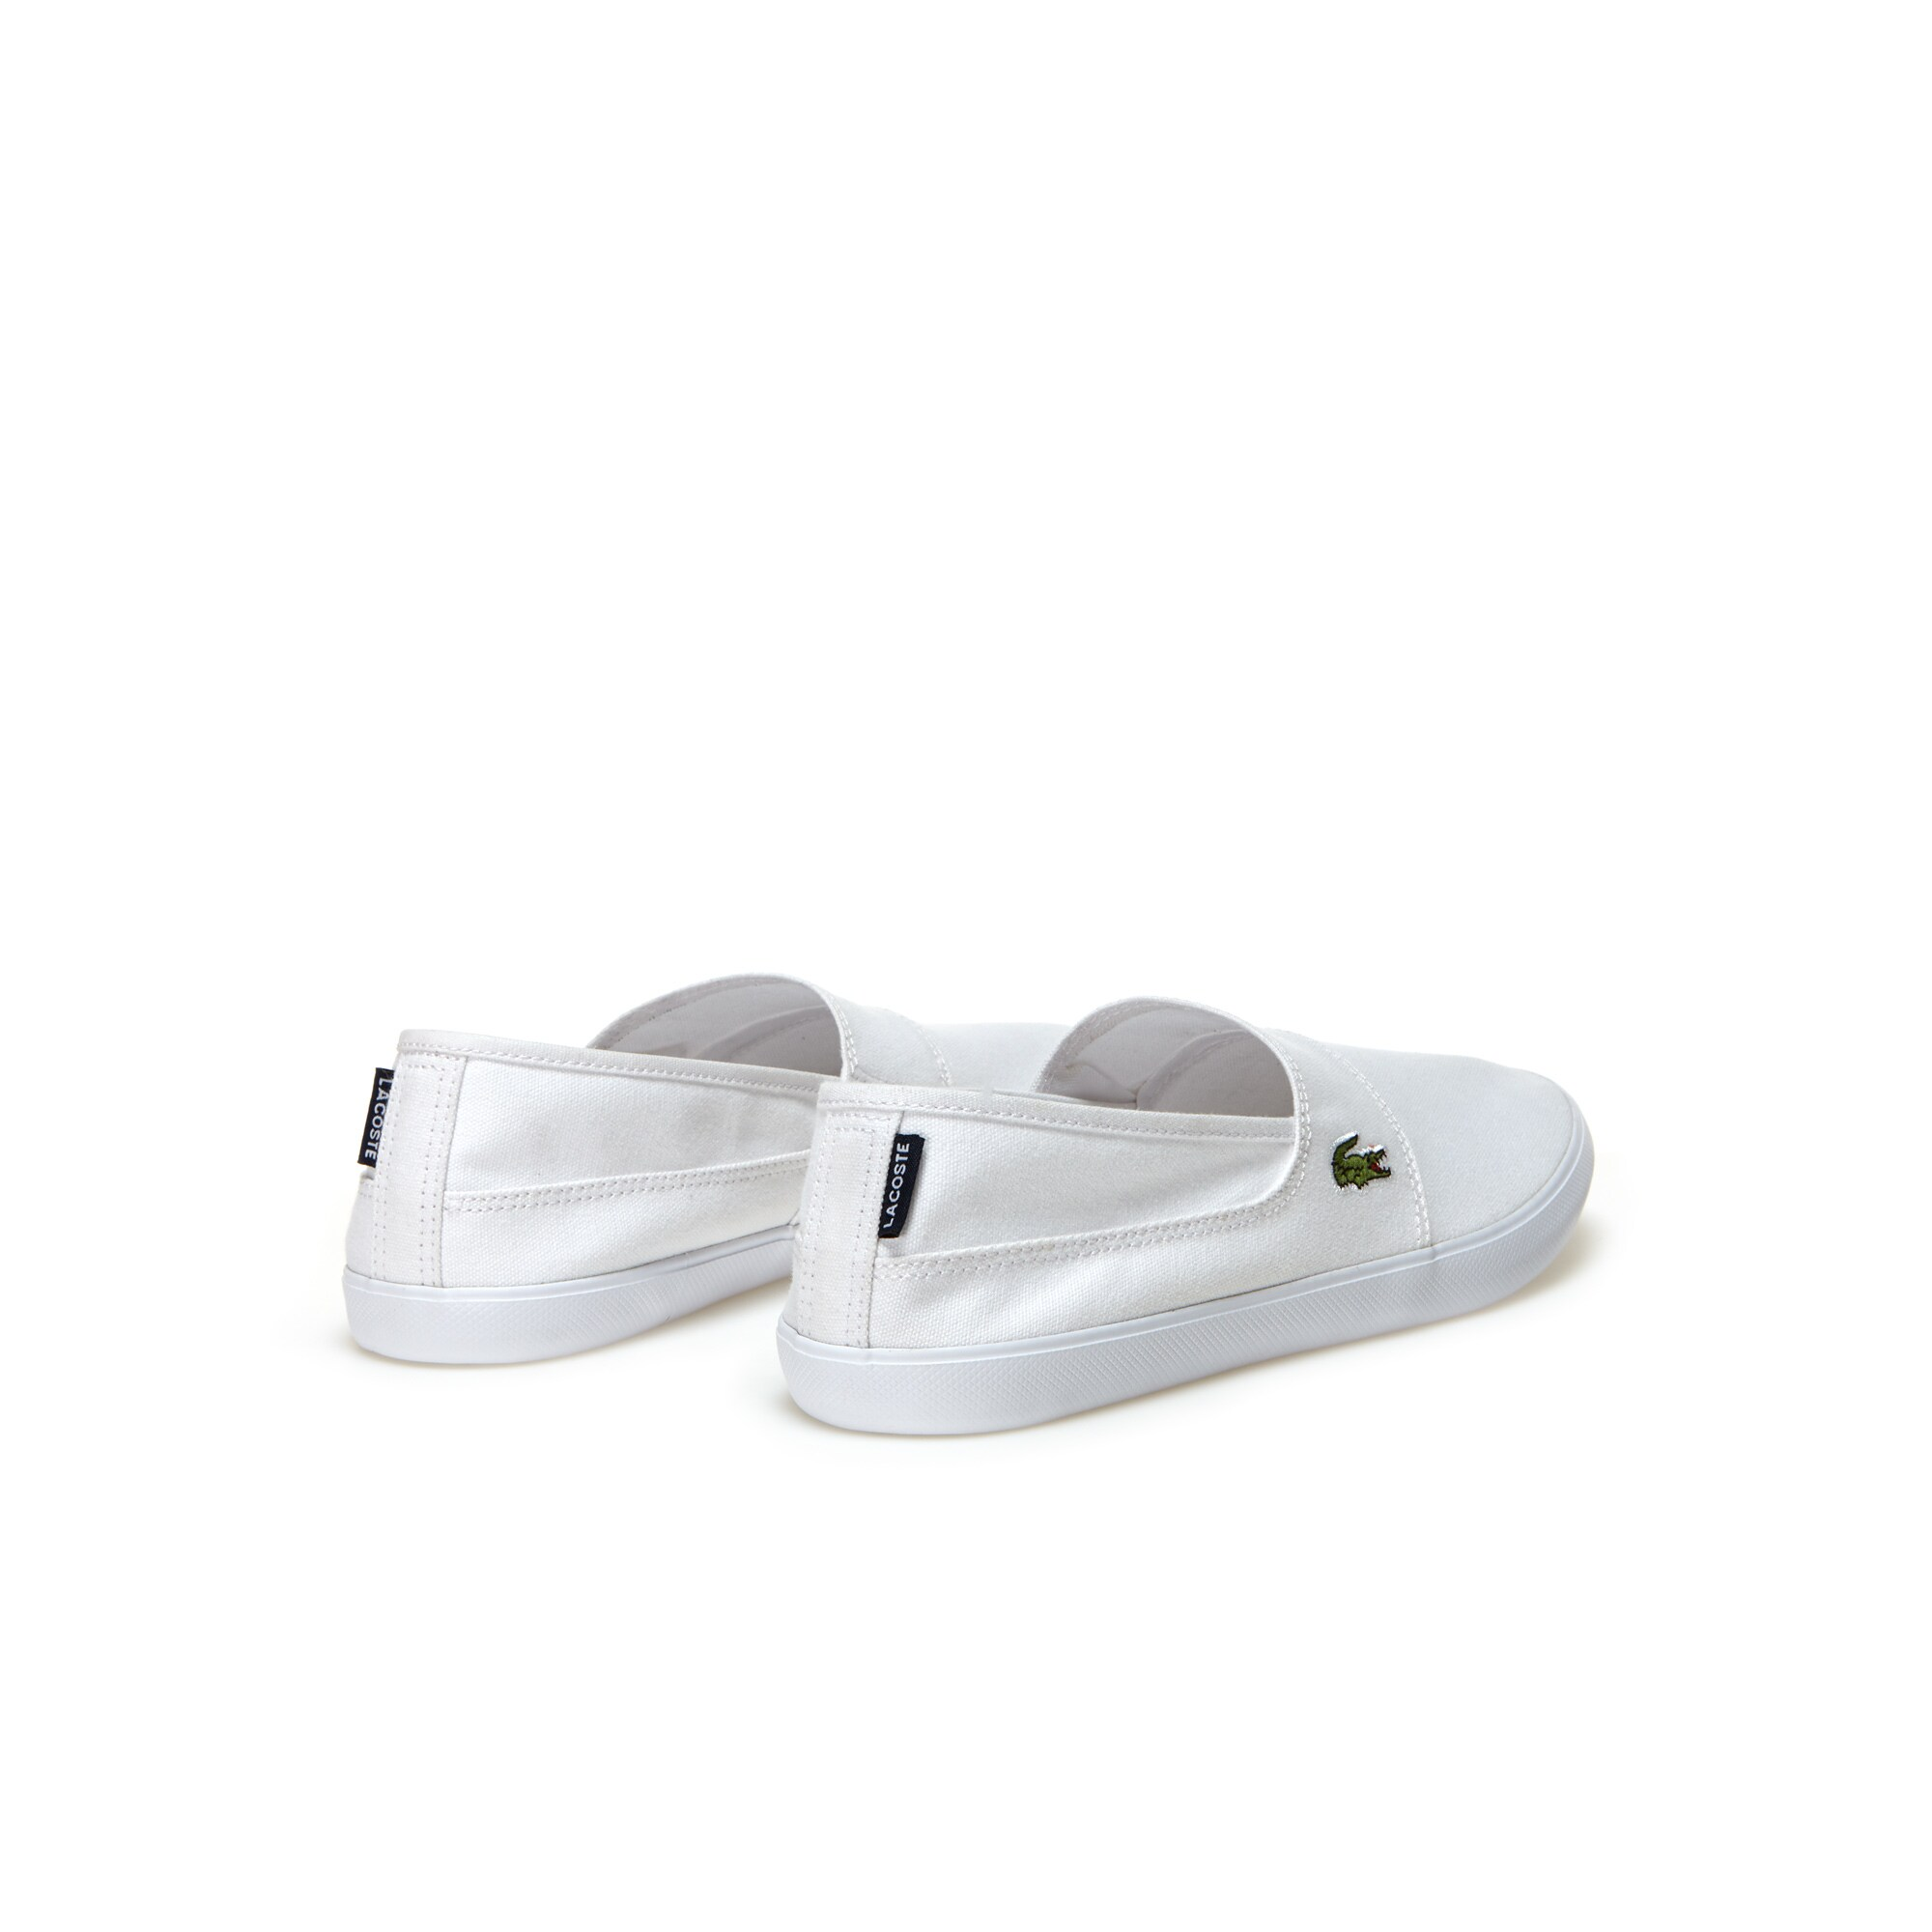 Lacoste Men's Graduate Premium Leather Slip on